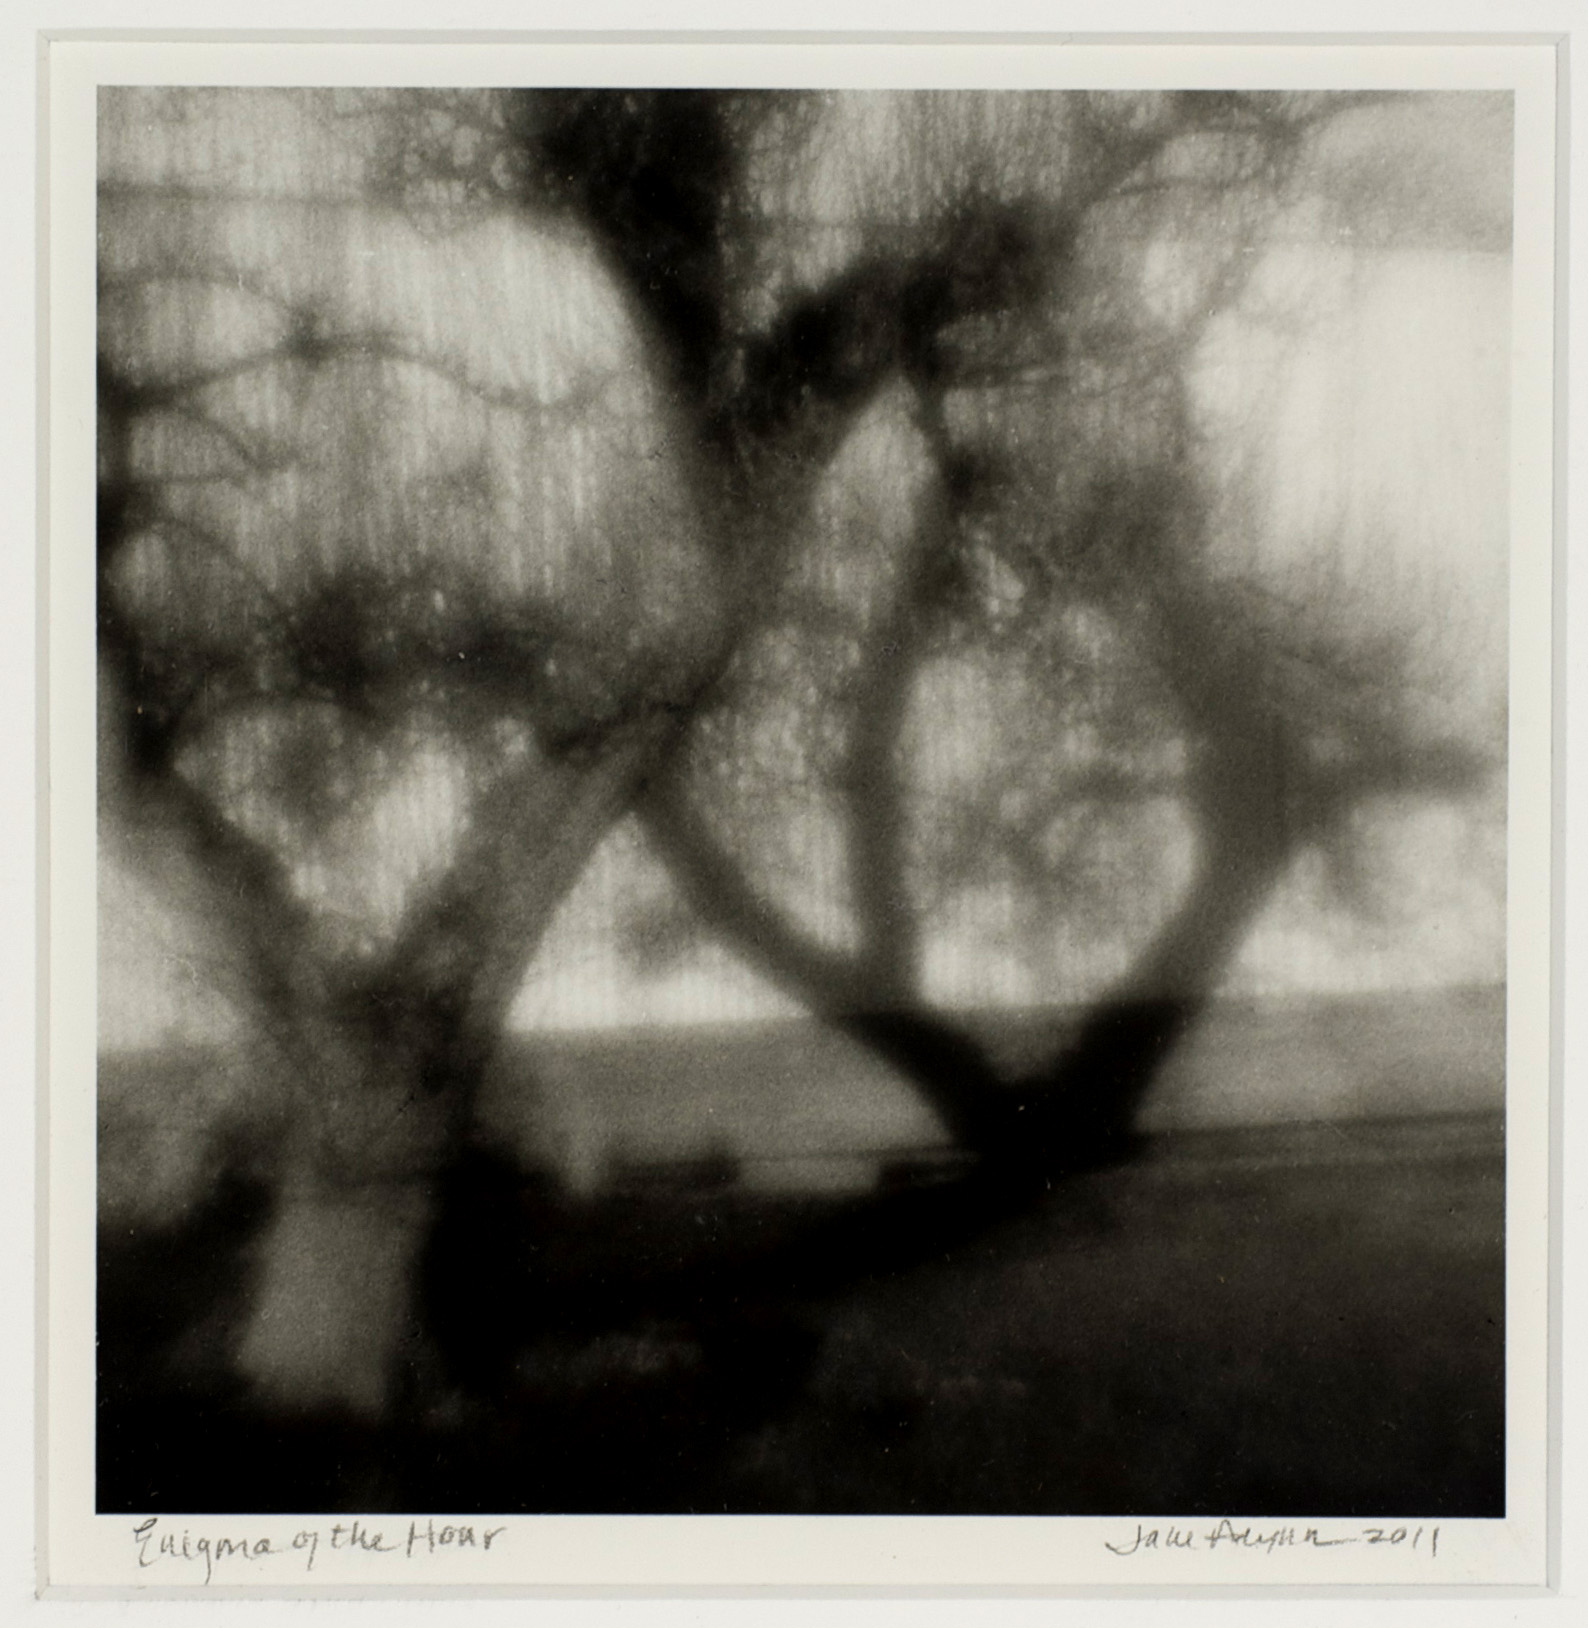 Jane Alynn     Enigma of the Hour , 2011  Zone plate photograph, silver gelatin print